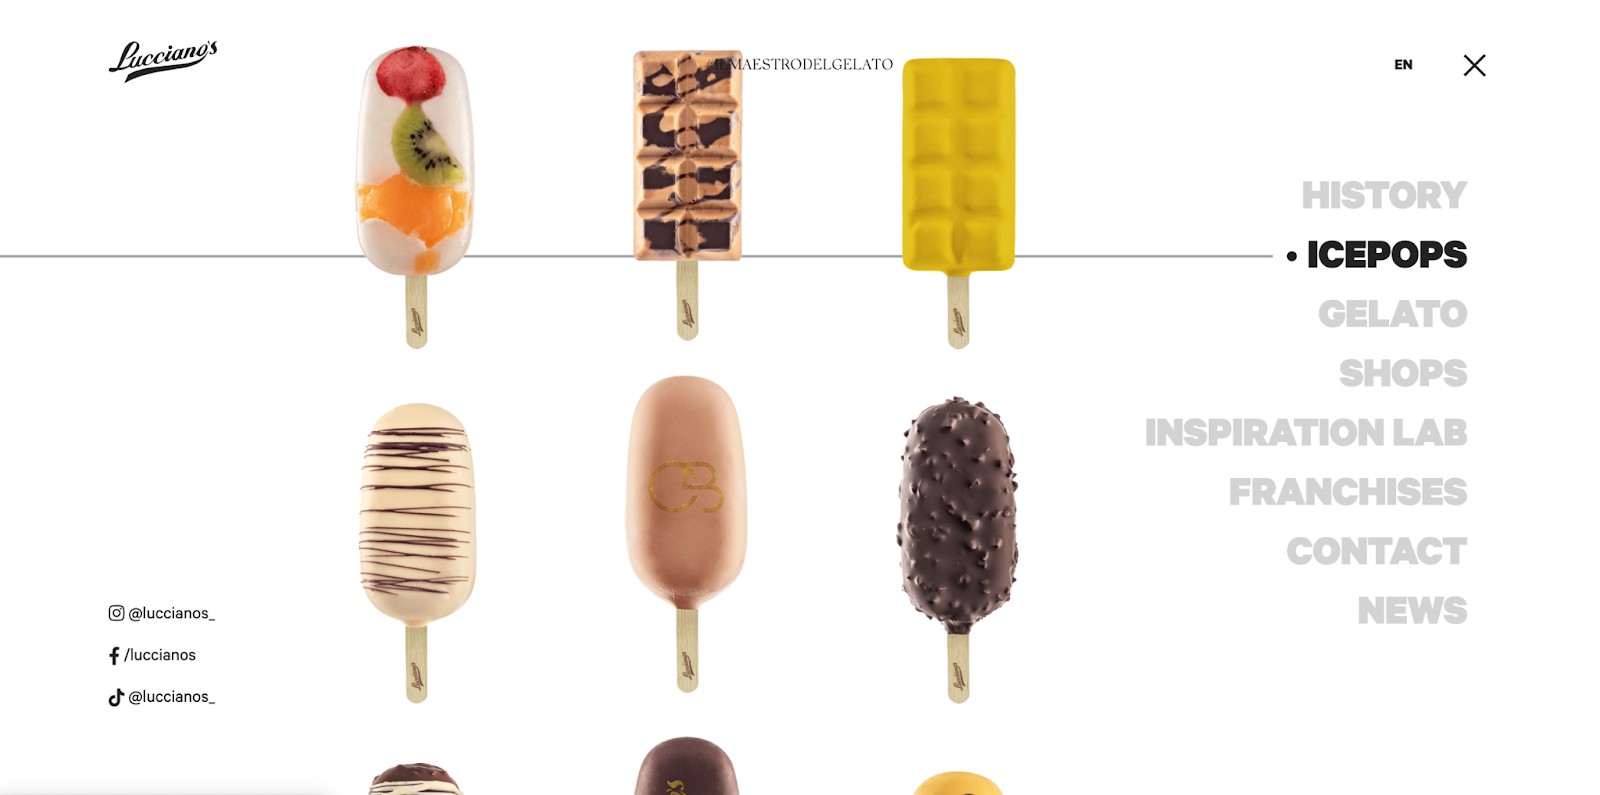 Every ice pop you can choose scrolls up continuously in the Lucciano's navbar